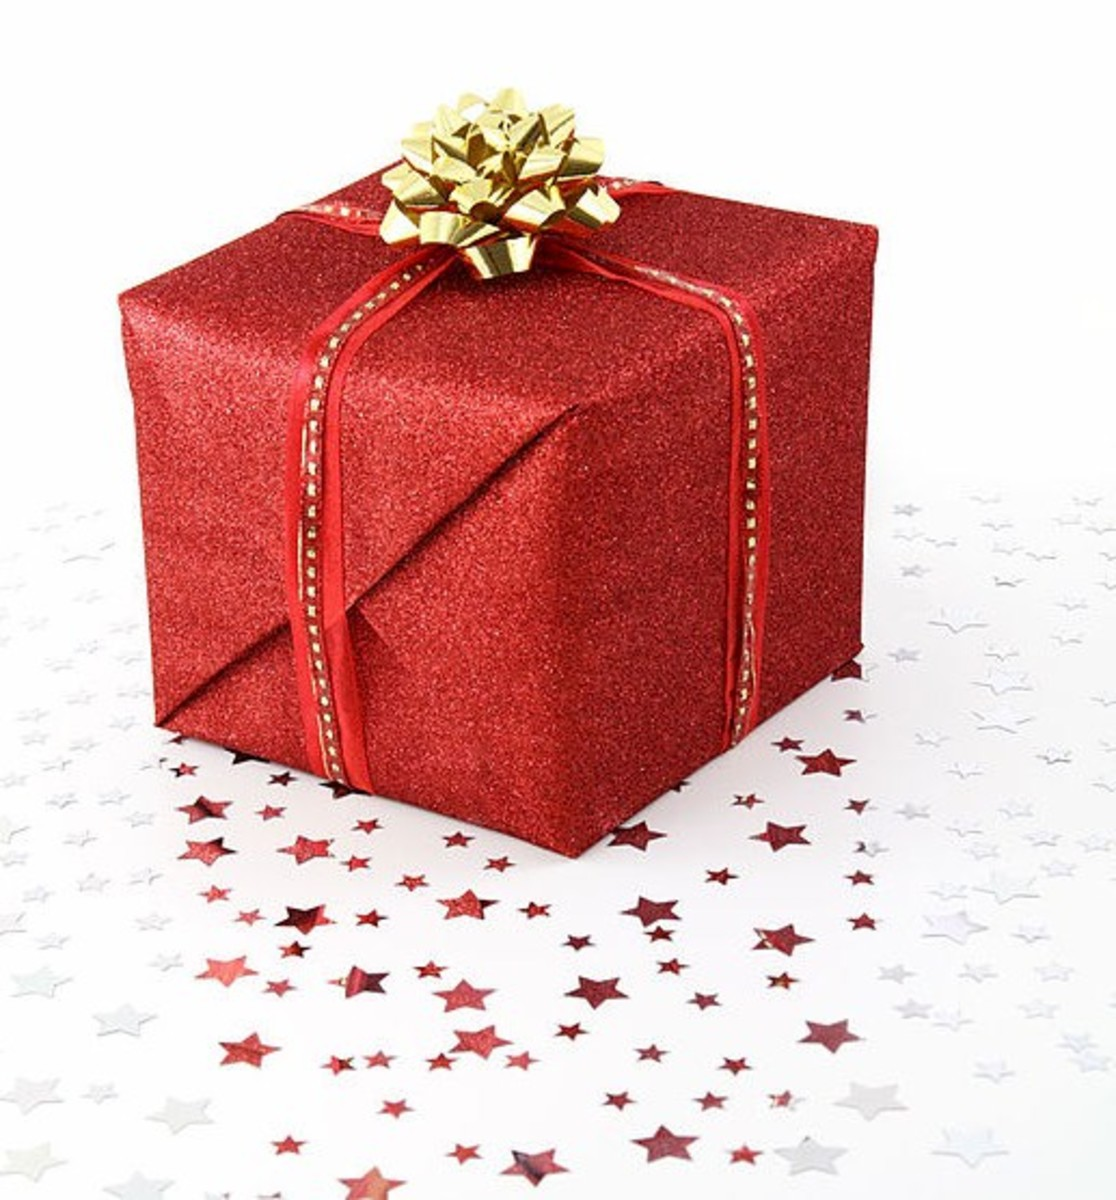 The sight of presents under the tree fills young and old with anticipation